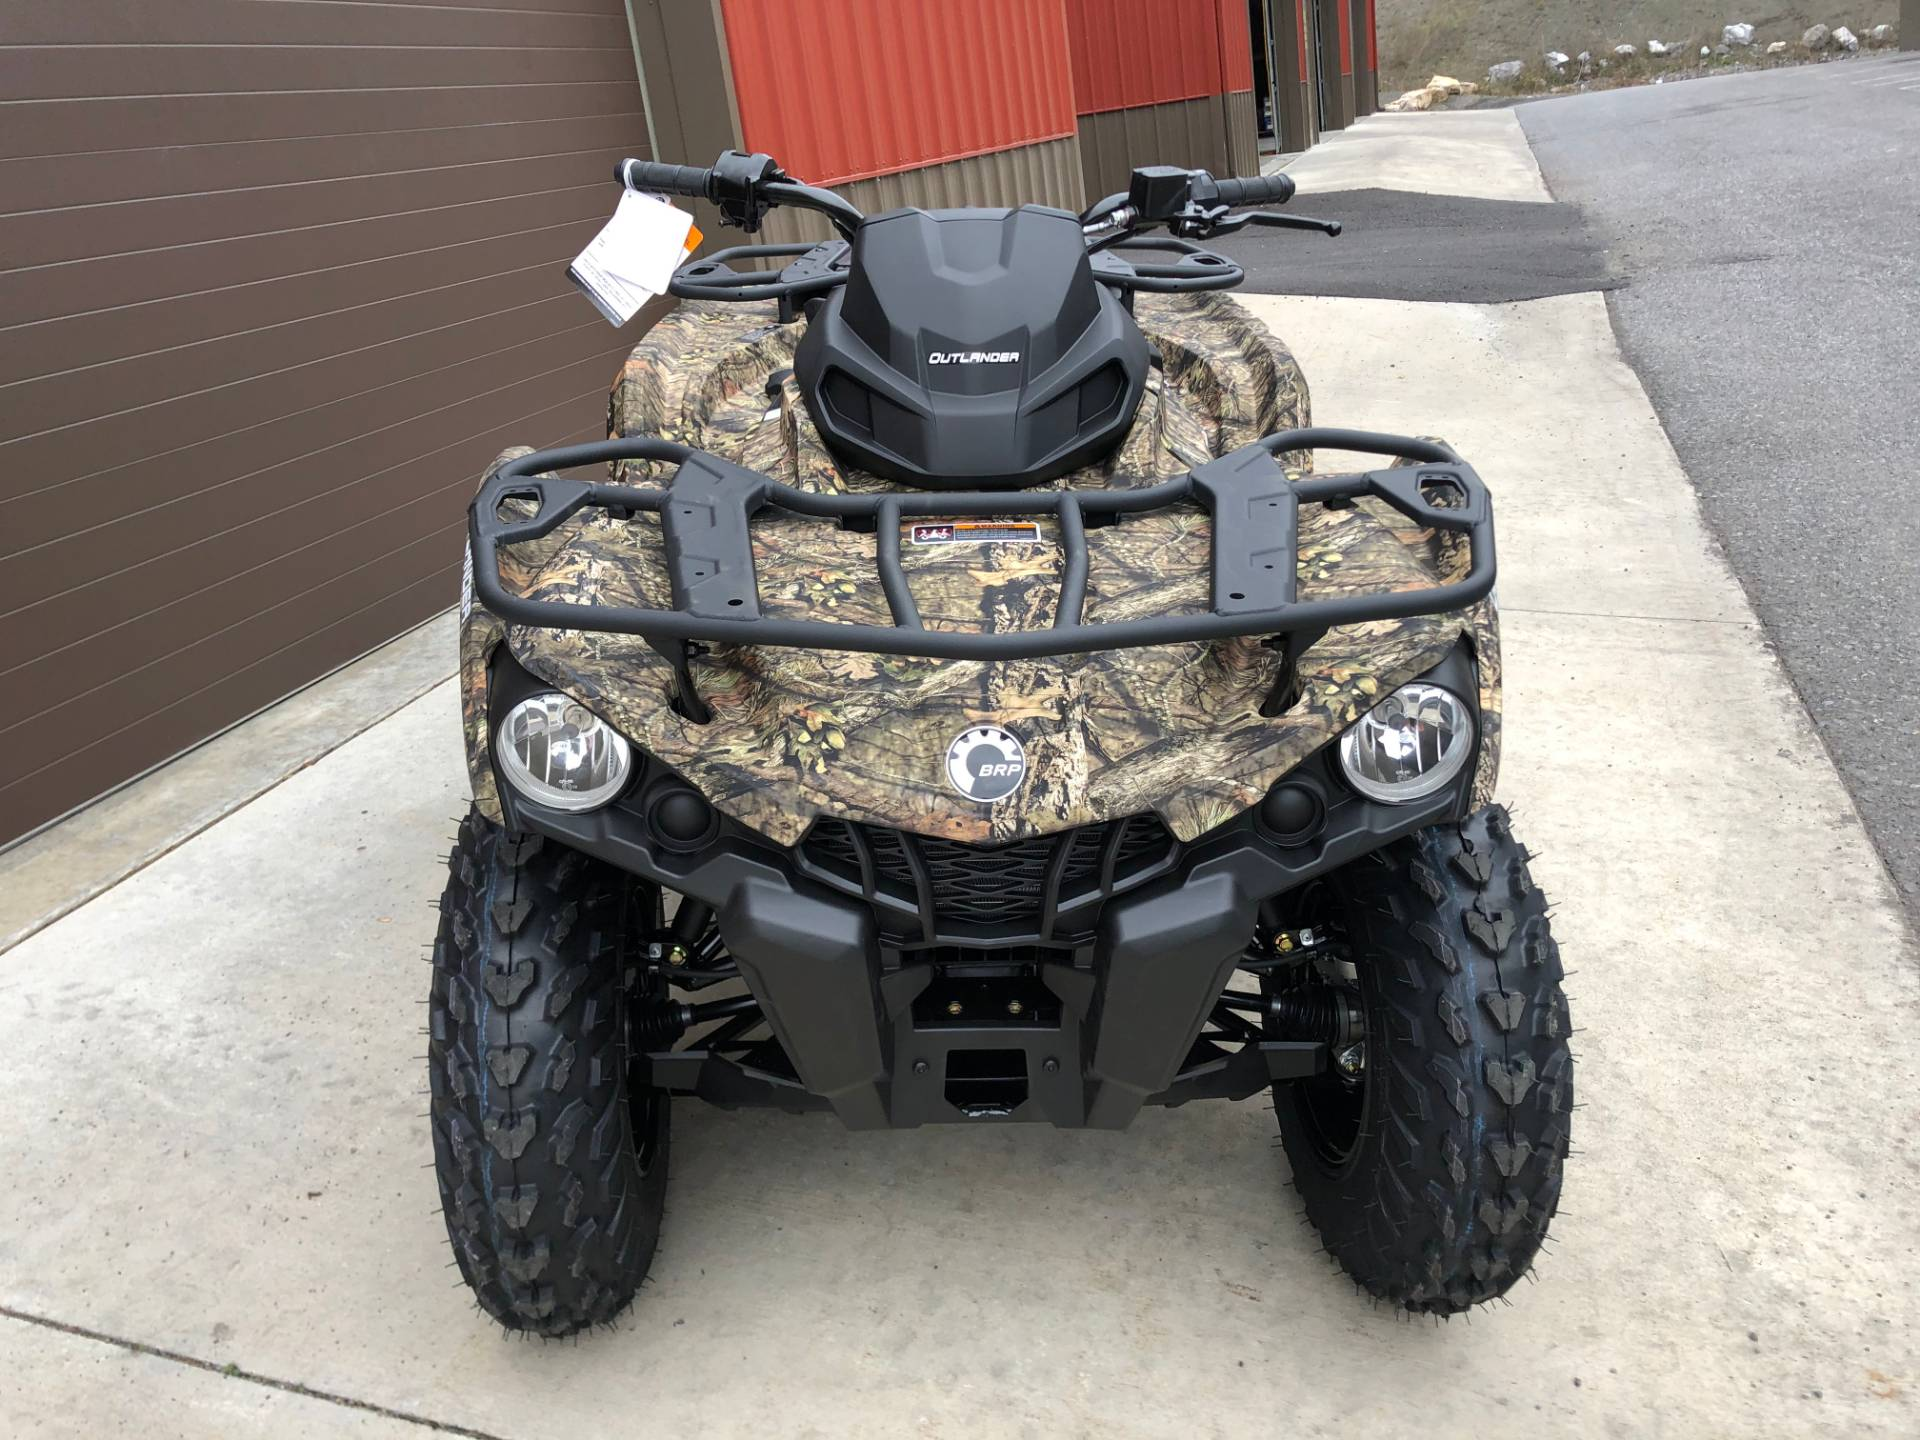 2021 Can-Am Outlander DPS 450 in Tyrone, Pennsylvania - Photo 3